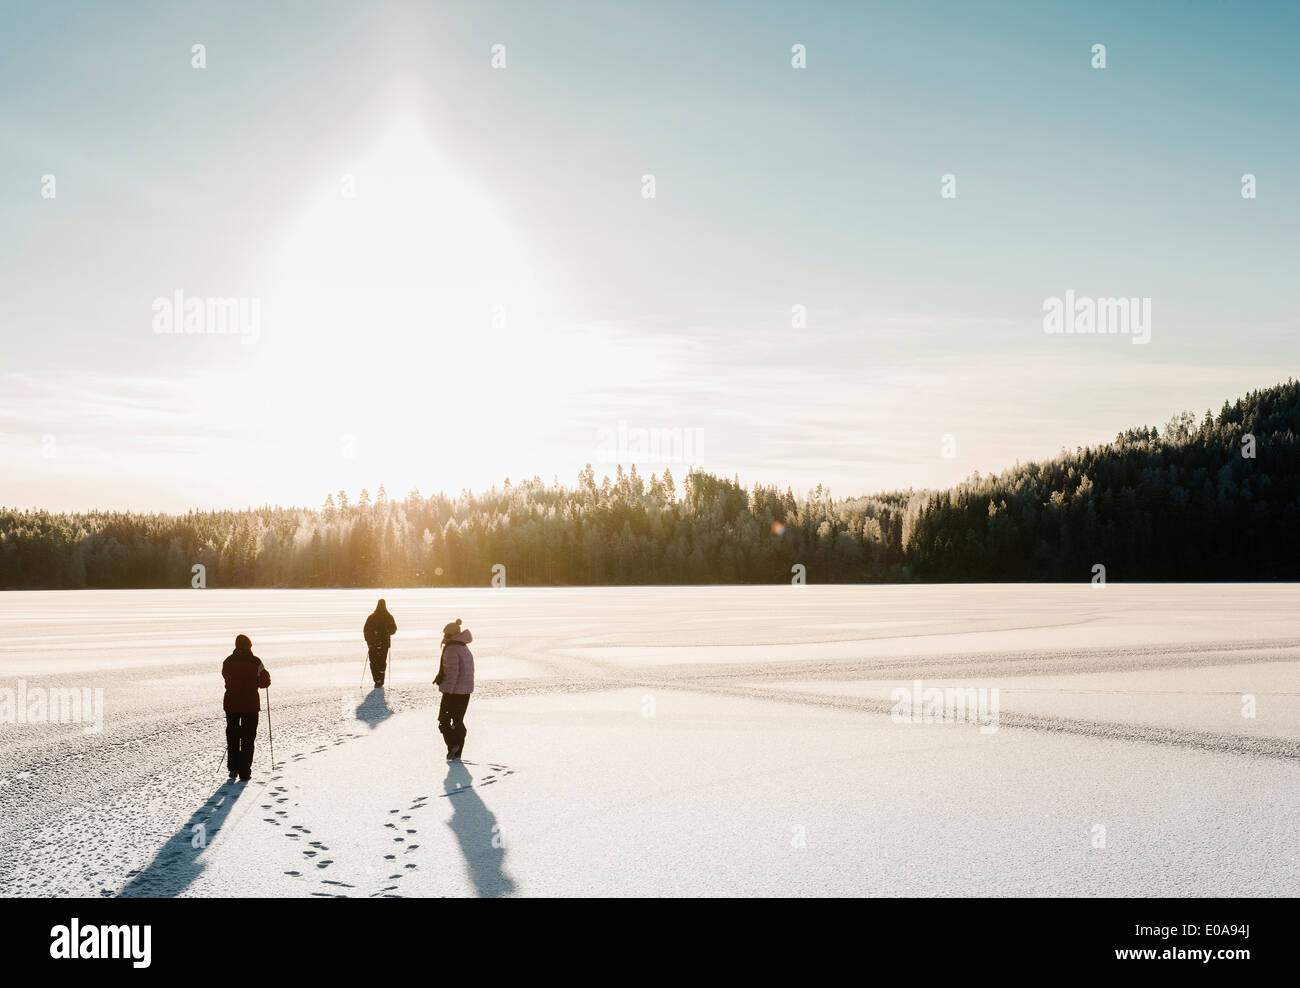 Three people nordic walking through snow covered field - Stock Image